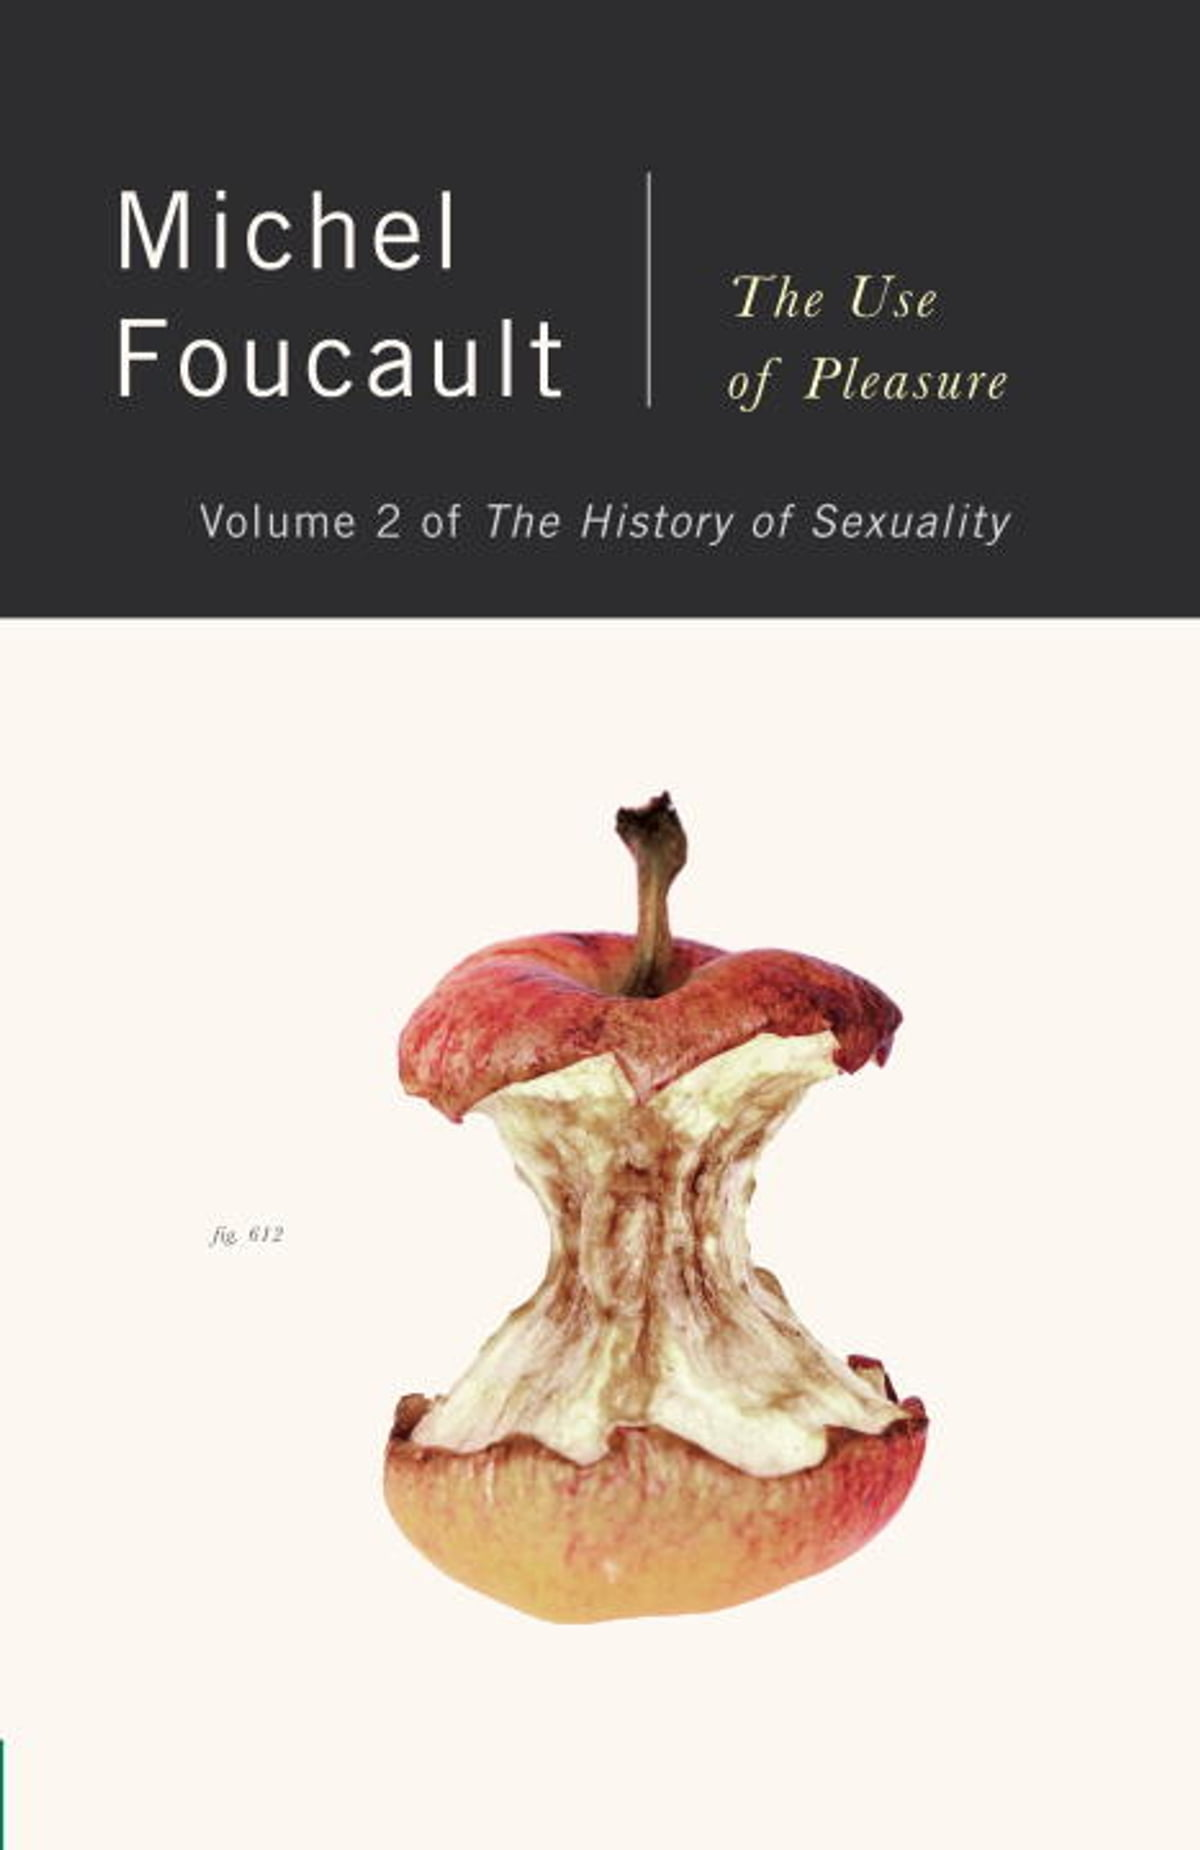 an introduction to the history of michael foucault Foucault, governmentality, and critical disability theory an introduction t wenty years after michel foucault died of complications from aids, the scope of his intellectual endeavors and the tremendous impetus to social  from 1971 until his death in 1984, foucault held the chair in the history of systems of thought at the collège de france, where, during lectures and.